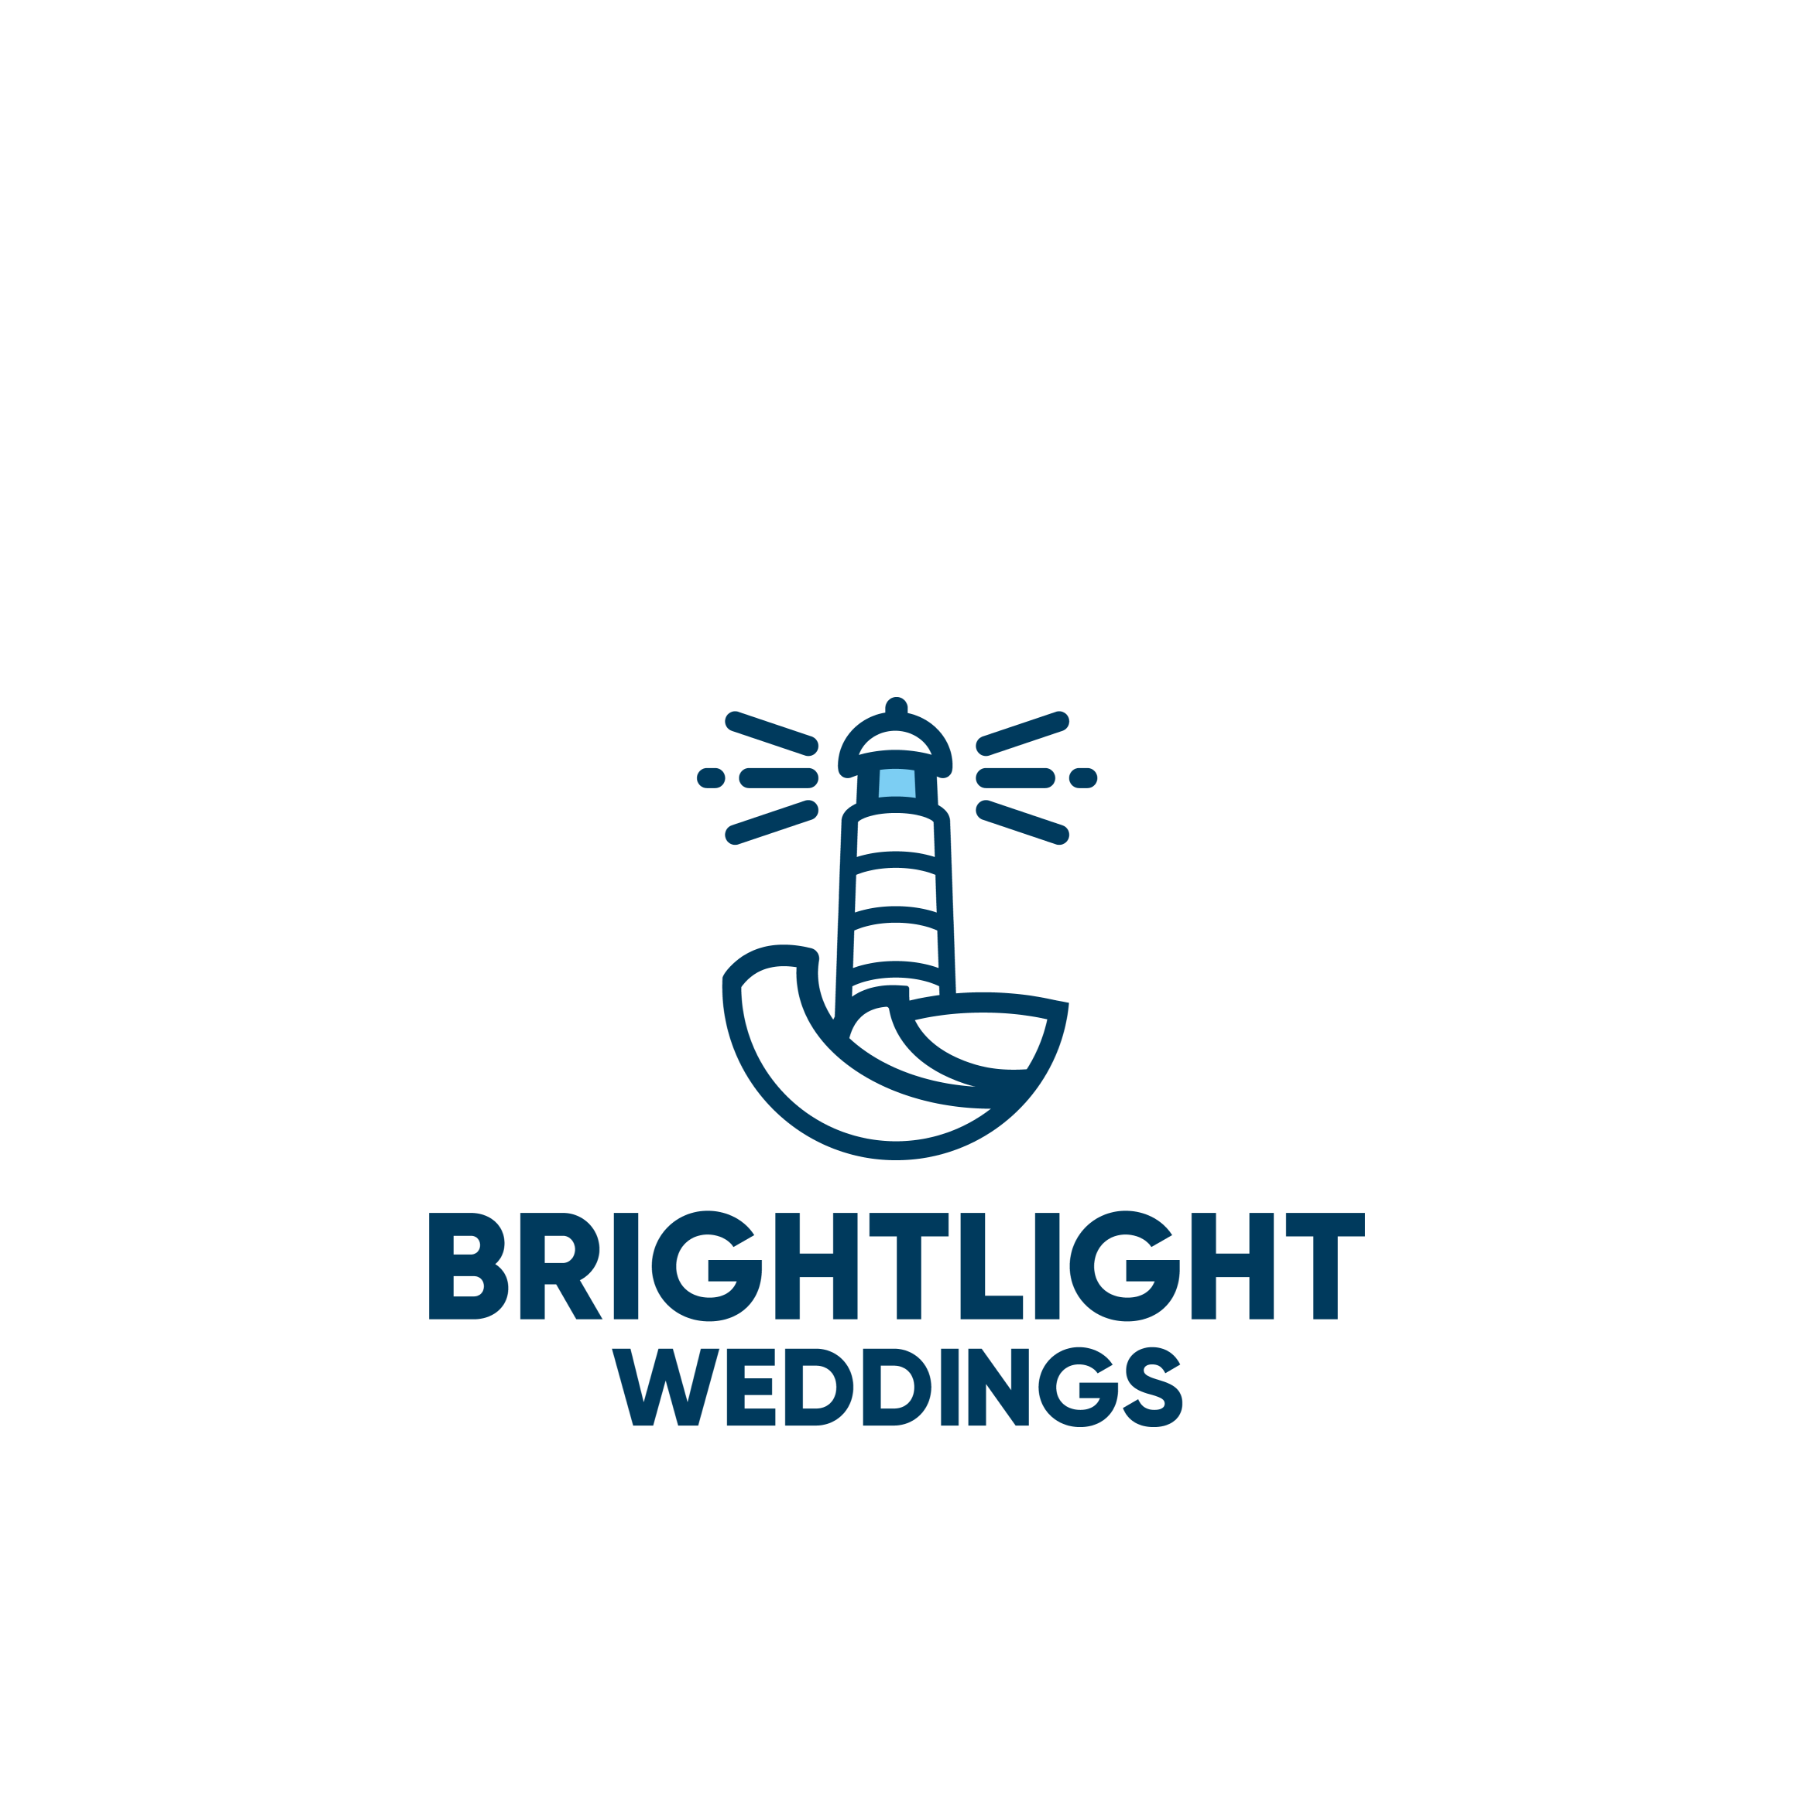 Brightlight Weddings